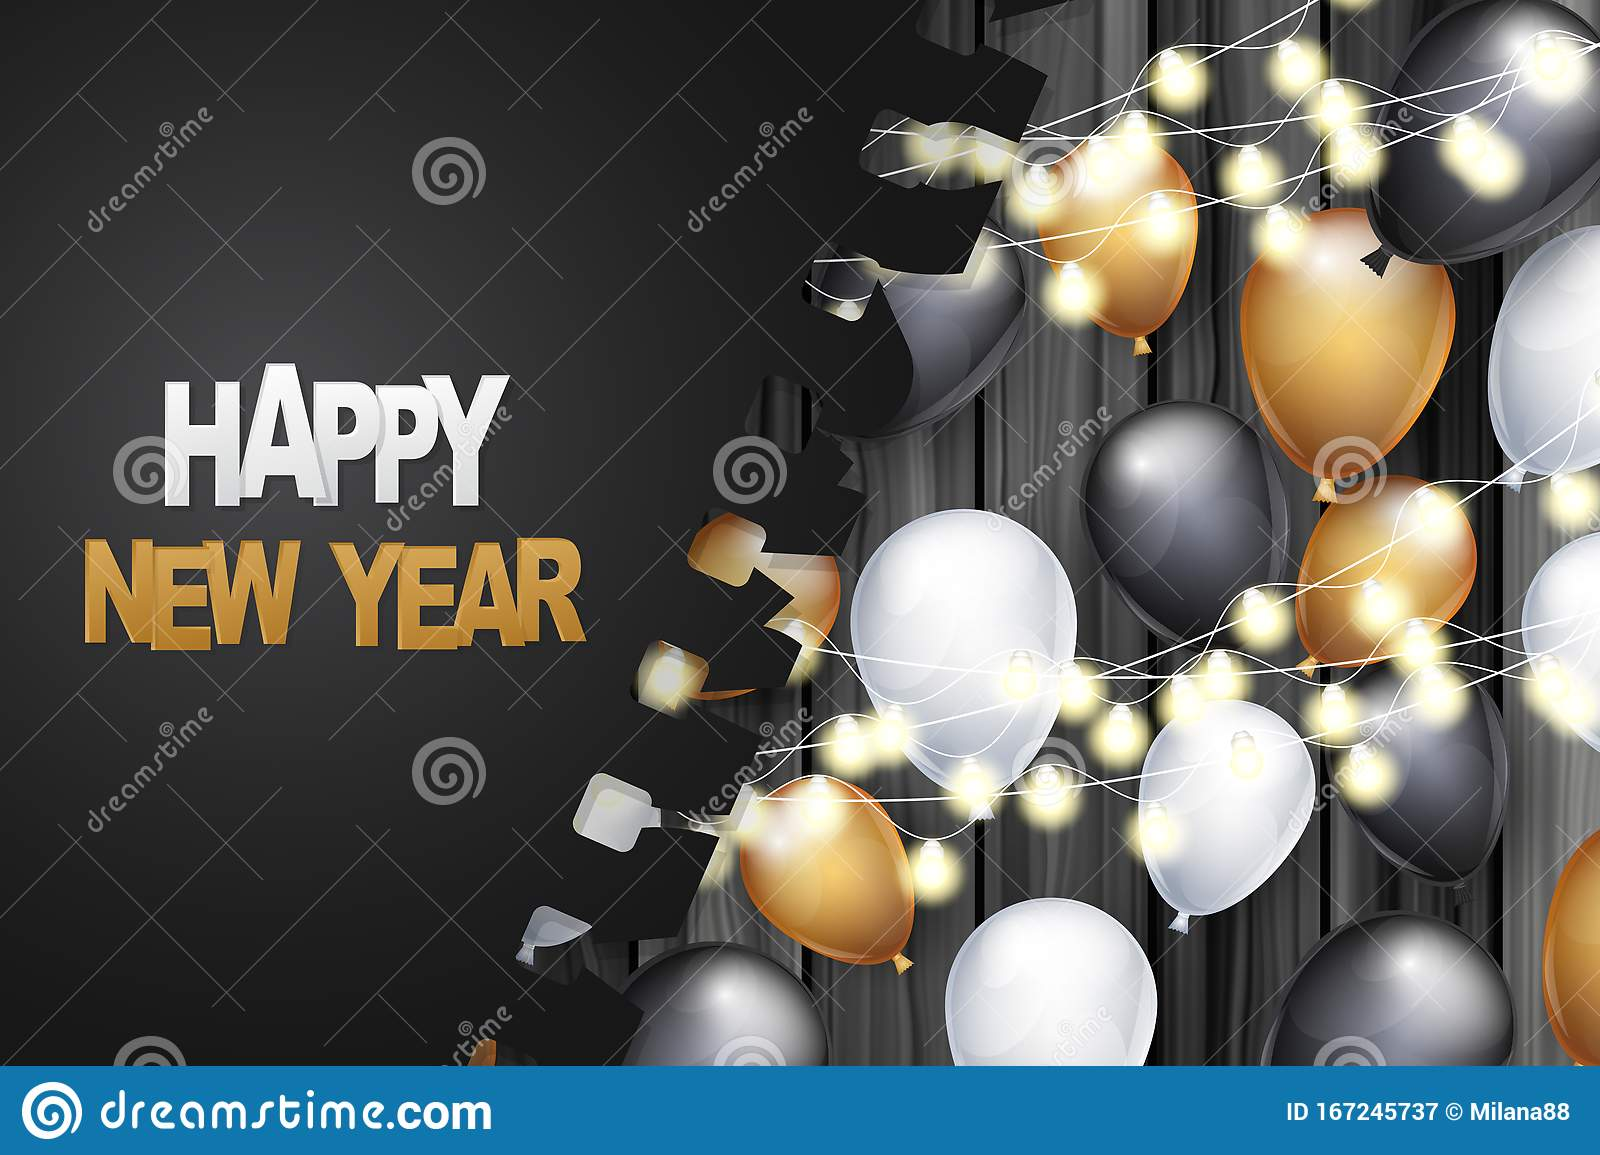 Happy New Year Banner Winter Holiday Celebration Design Concept With Golden Black And White Balloons Garland Lights Under Tor Stock Vector Illustration Of Christmas Background 167245737